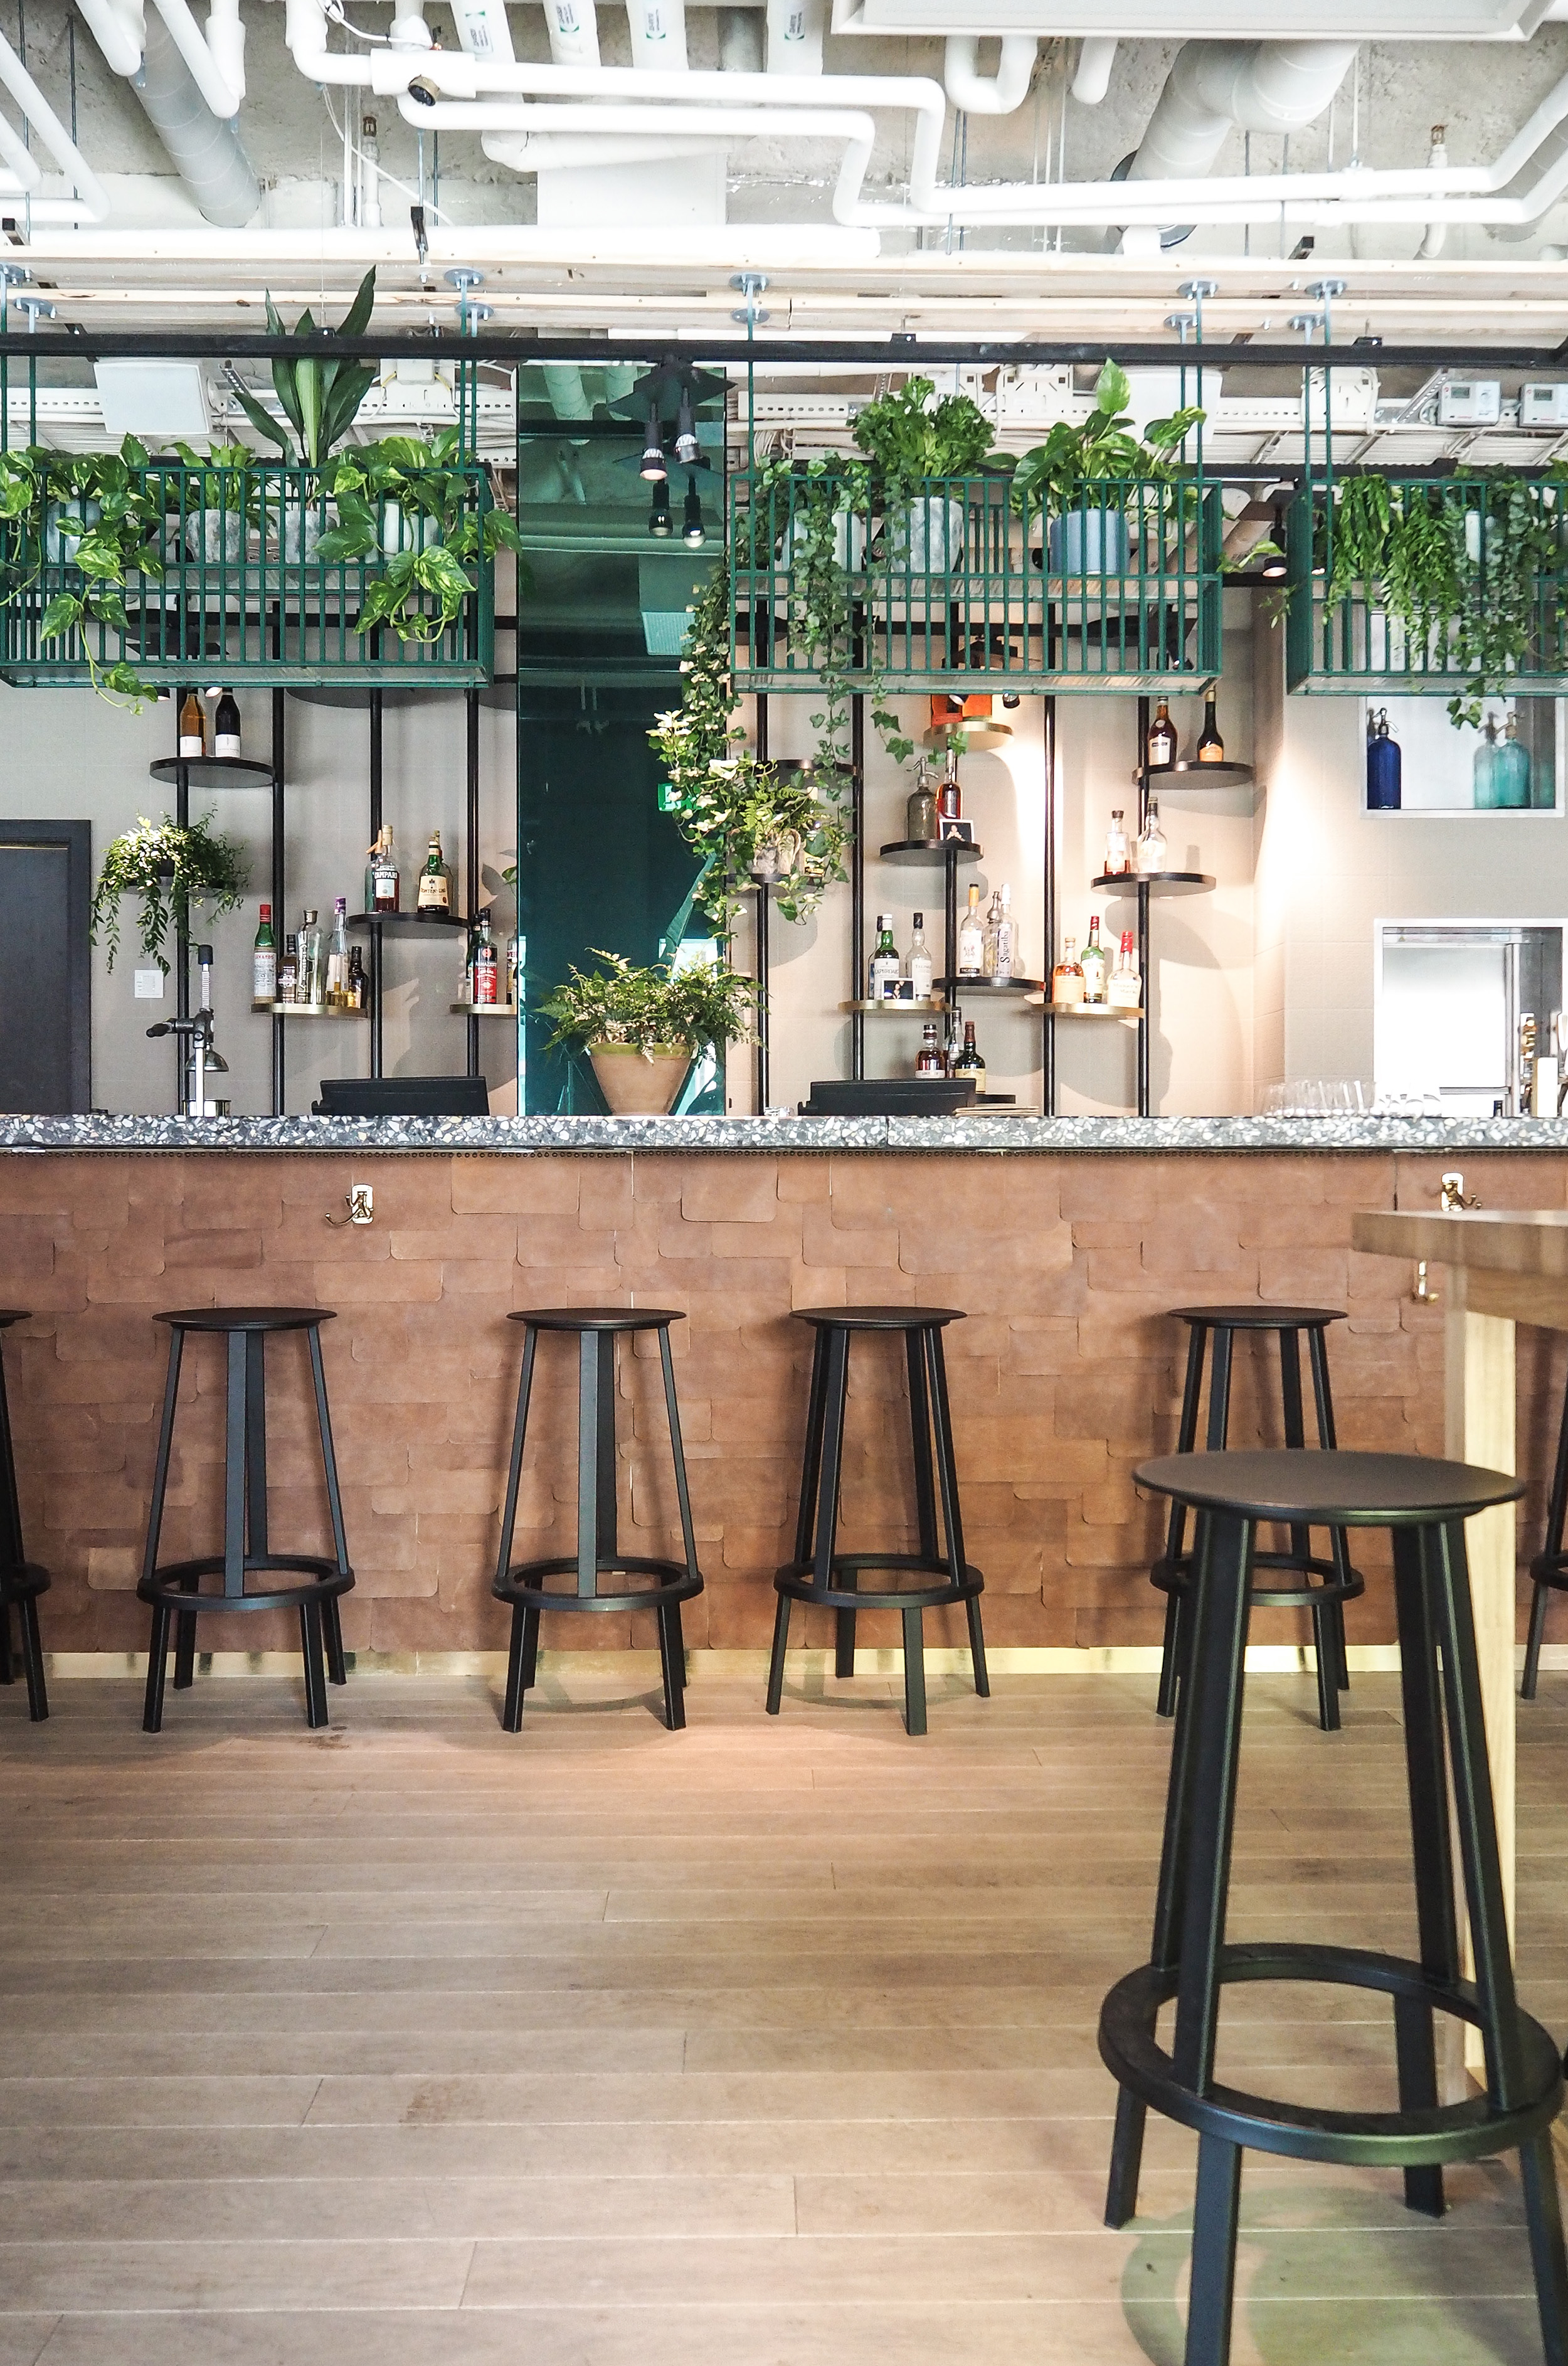 The HOBO hotel in Stockholm, a new young and fun design hotel